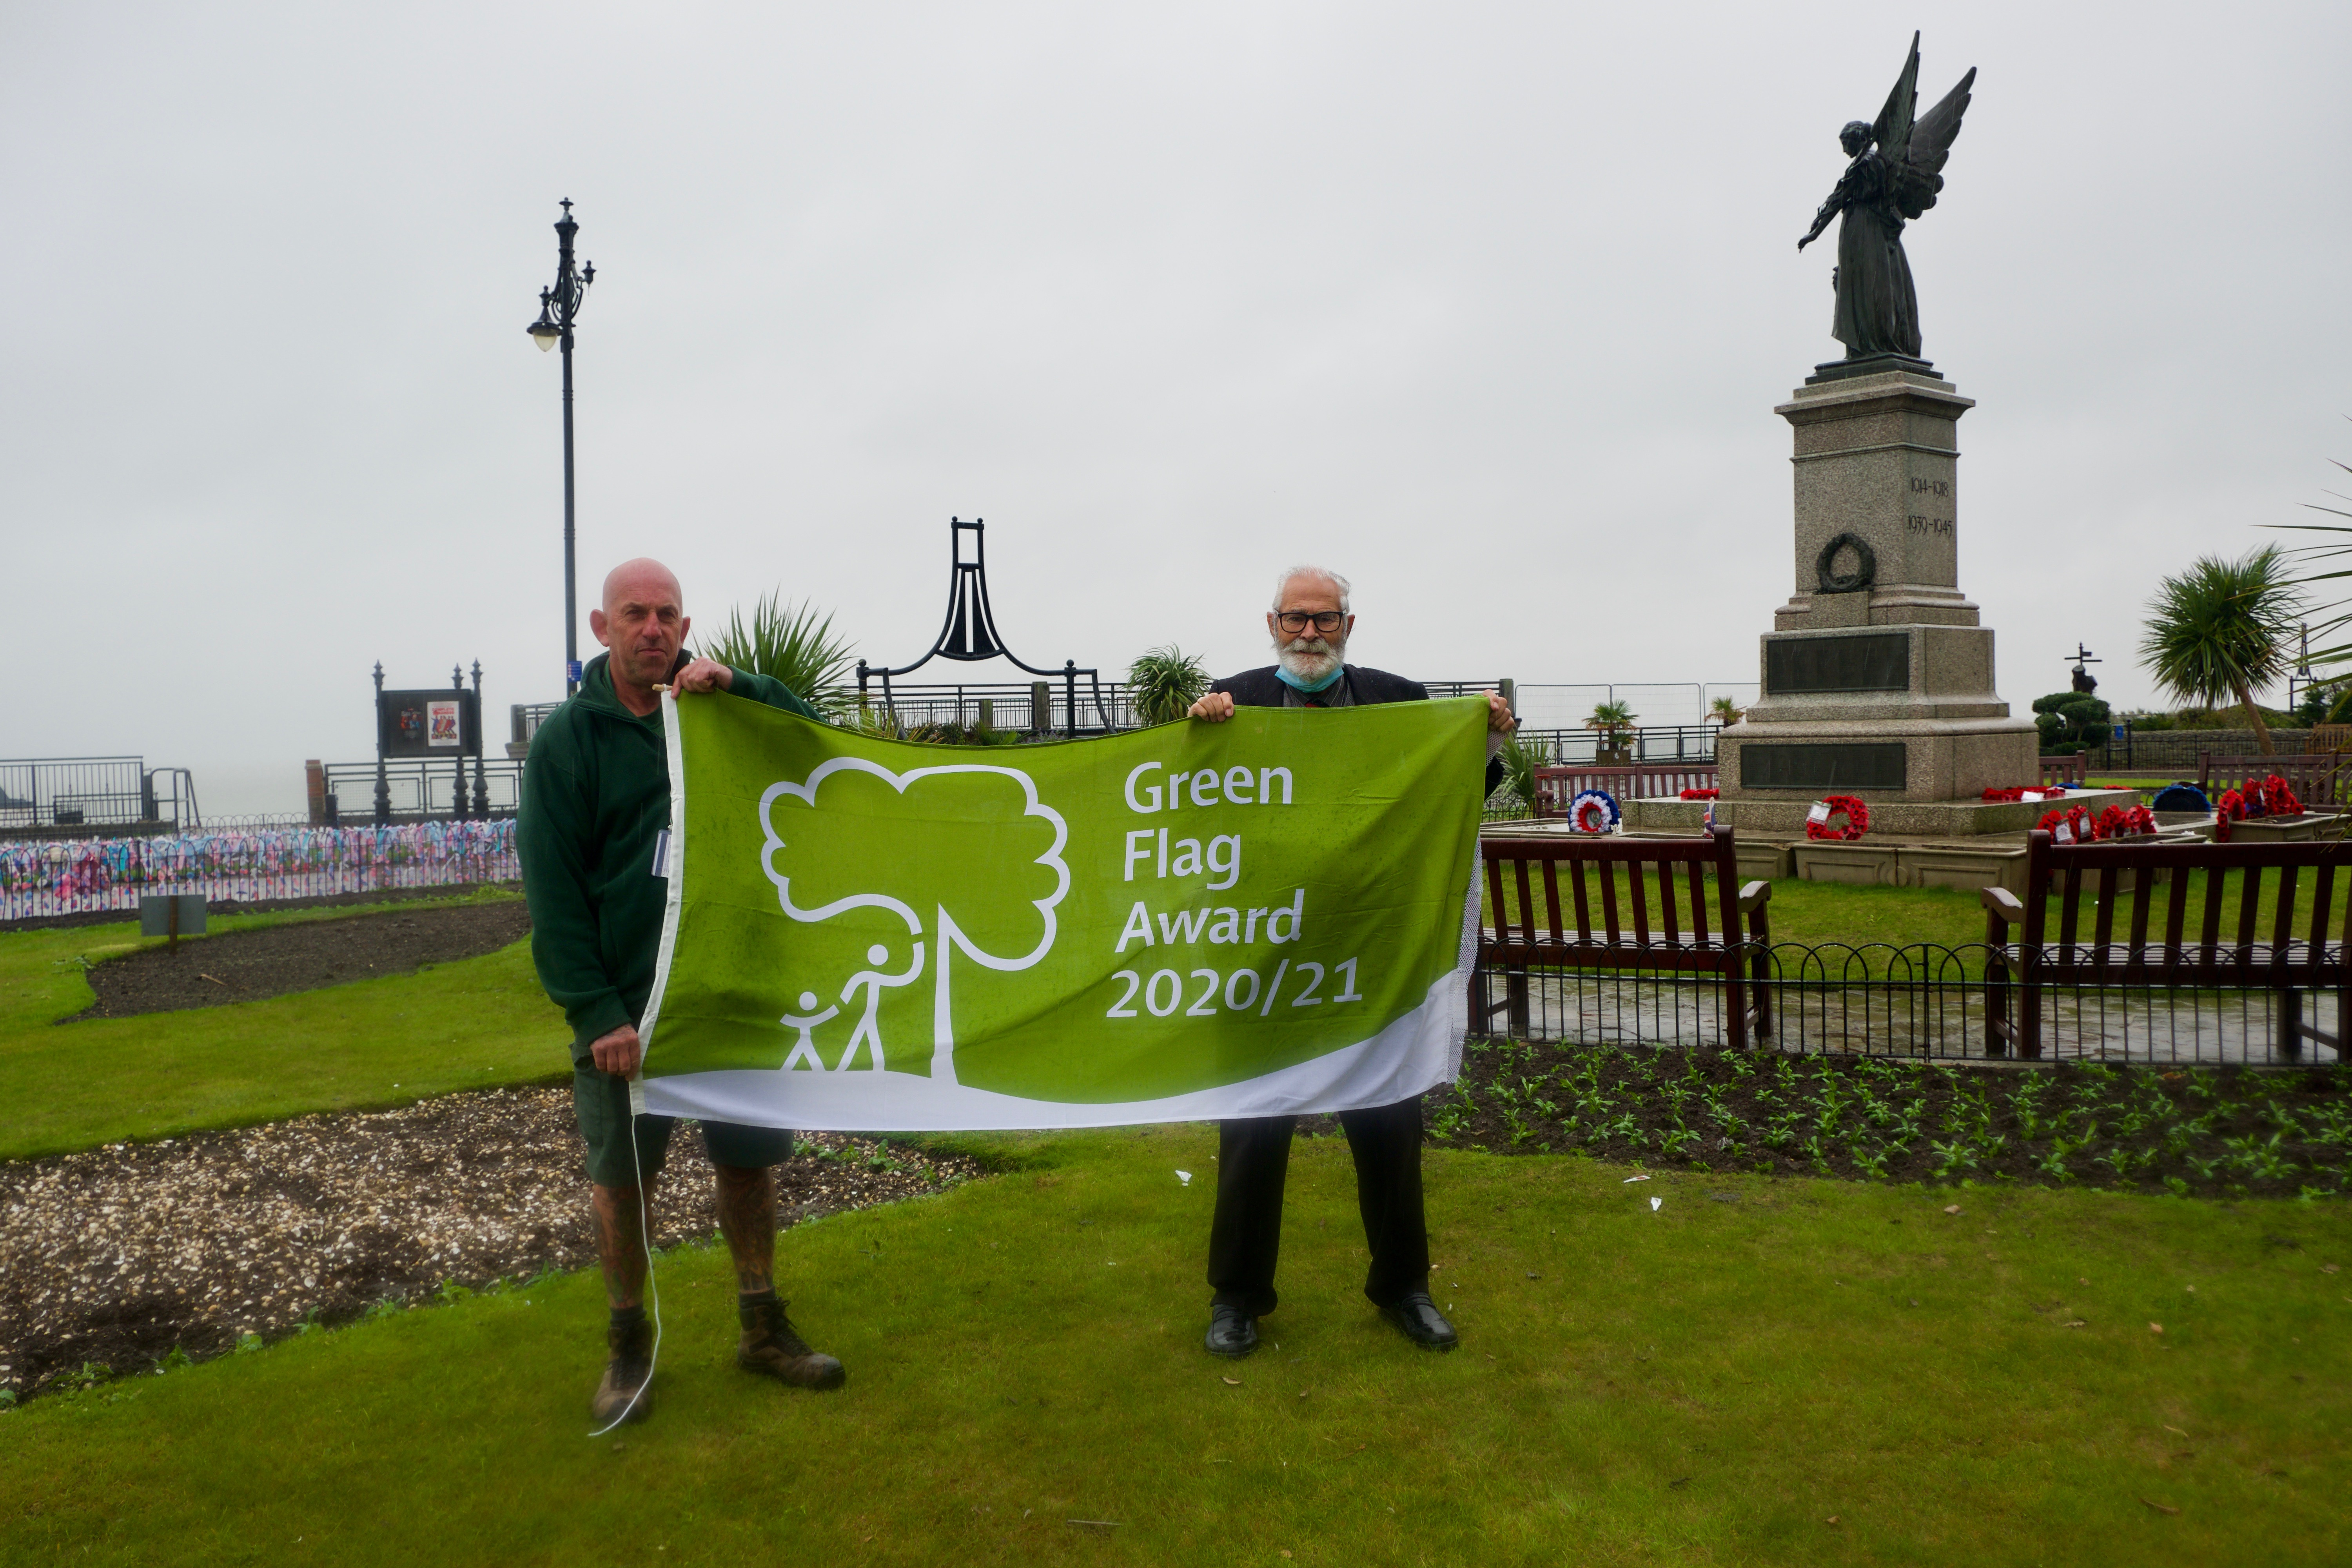 Clacton 2020/21 Seafront Green Flag Award